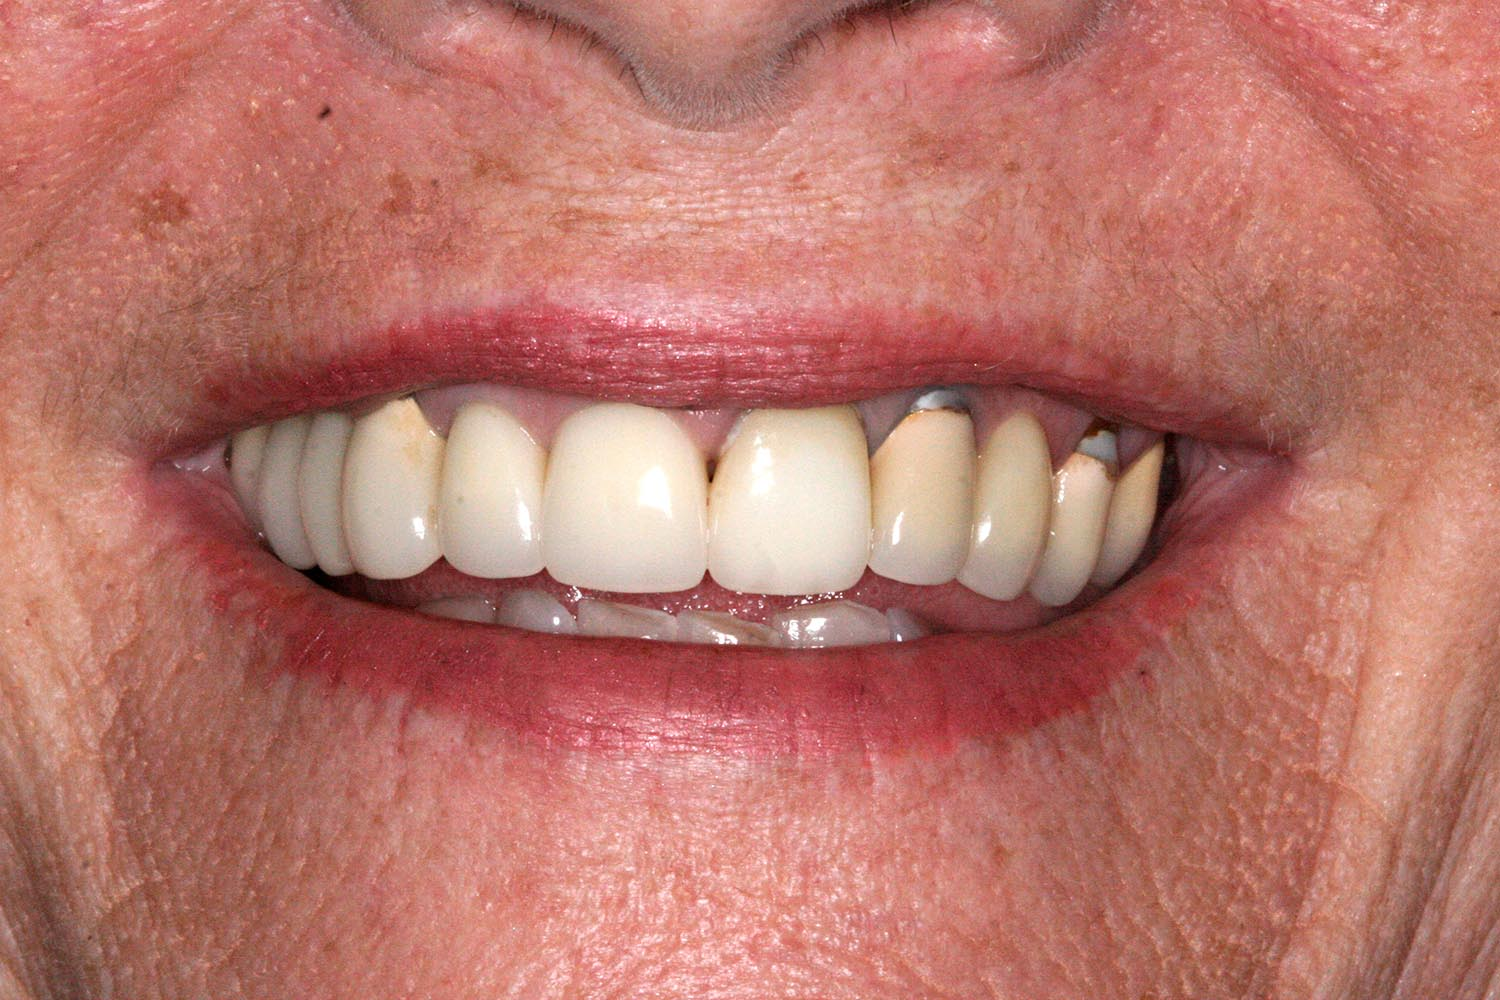 Before adding limited implants and restorations